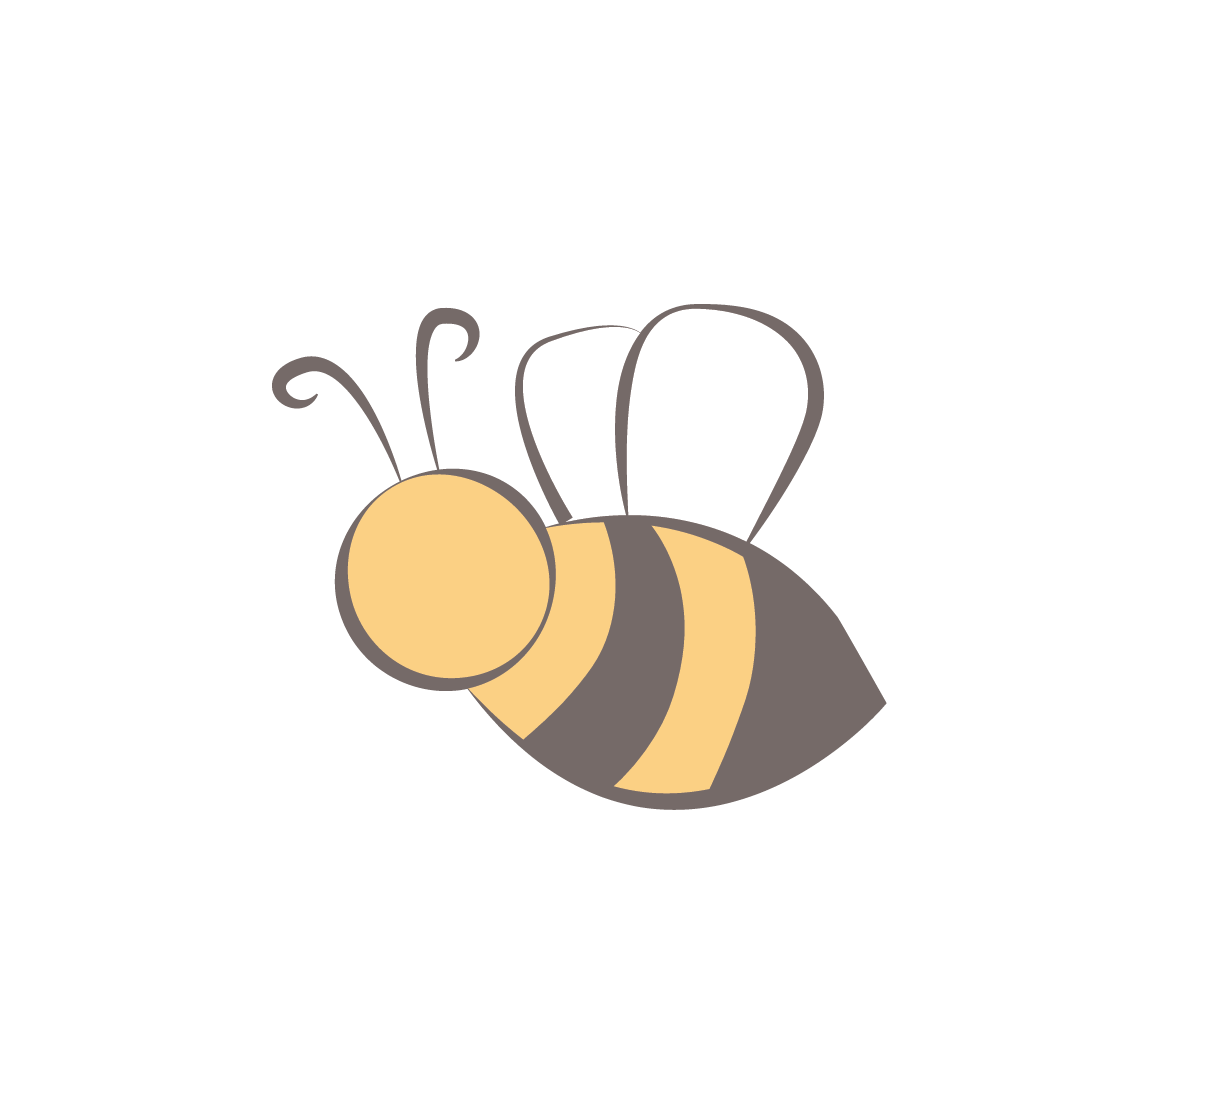 Clipart bee trail. Honeypot home ready for